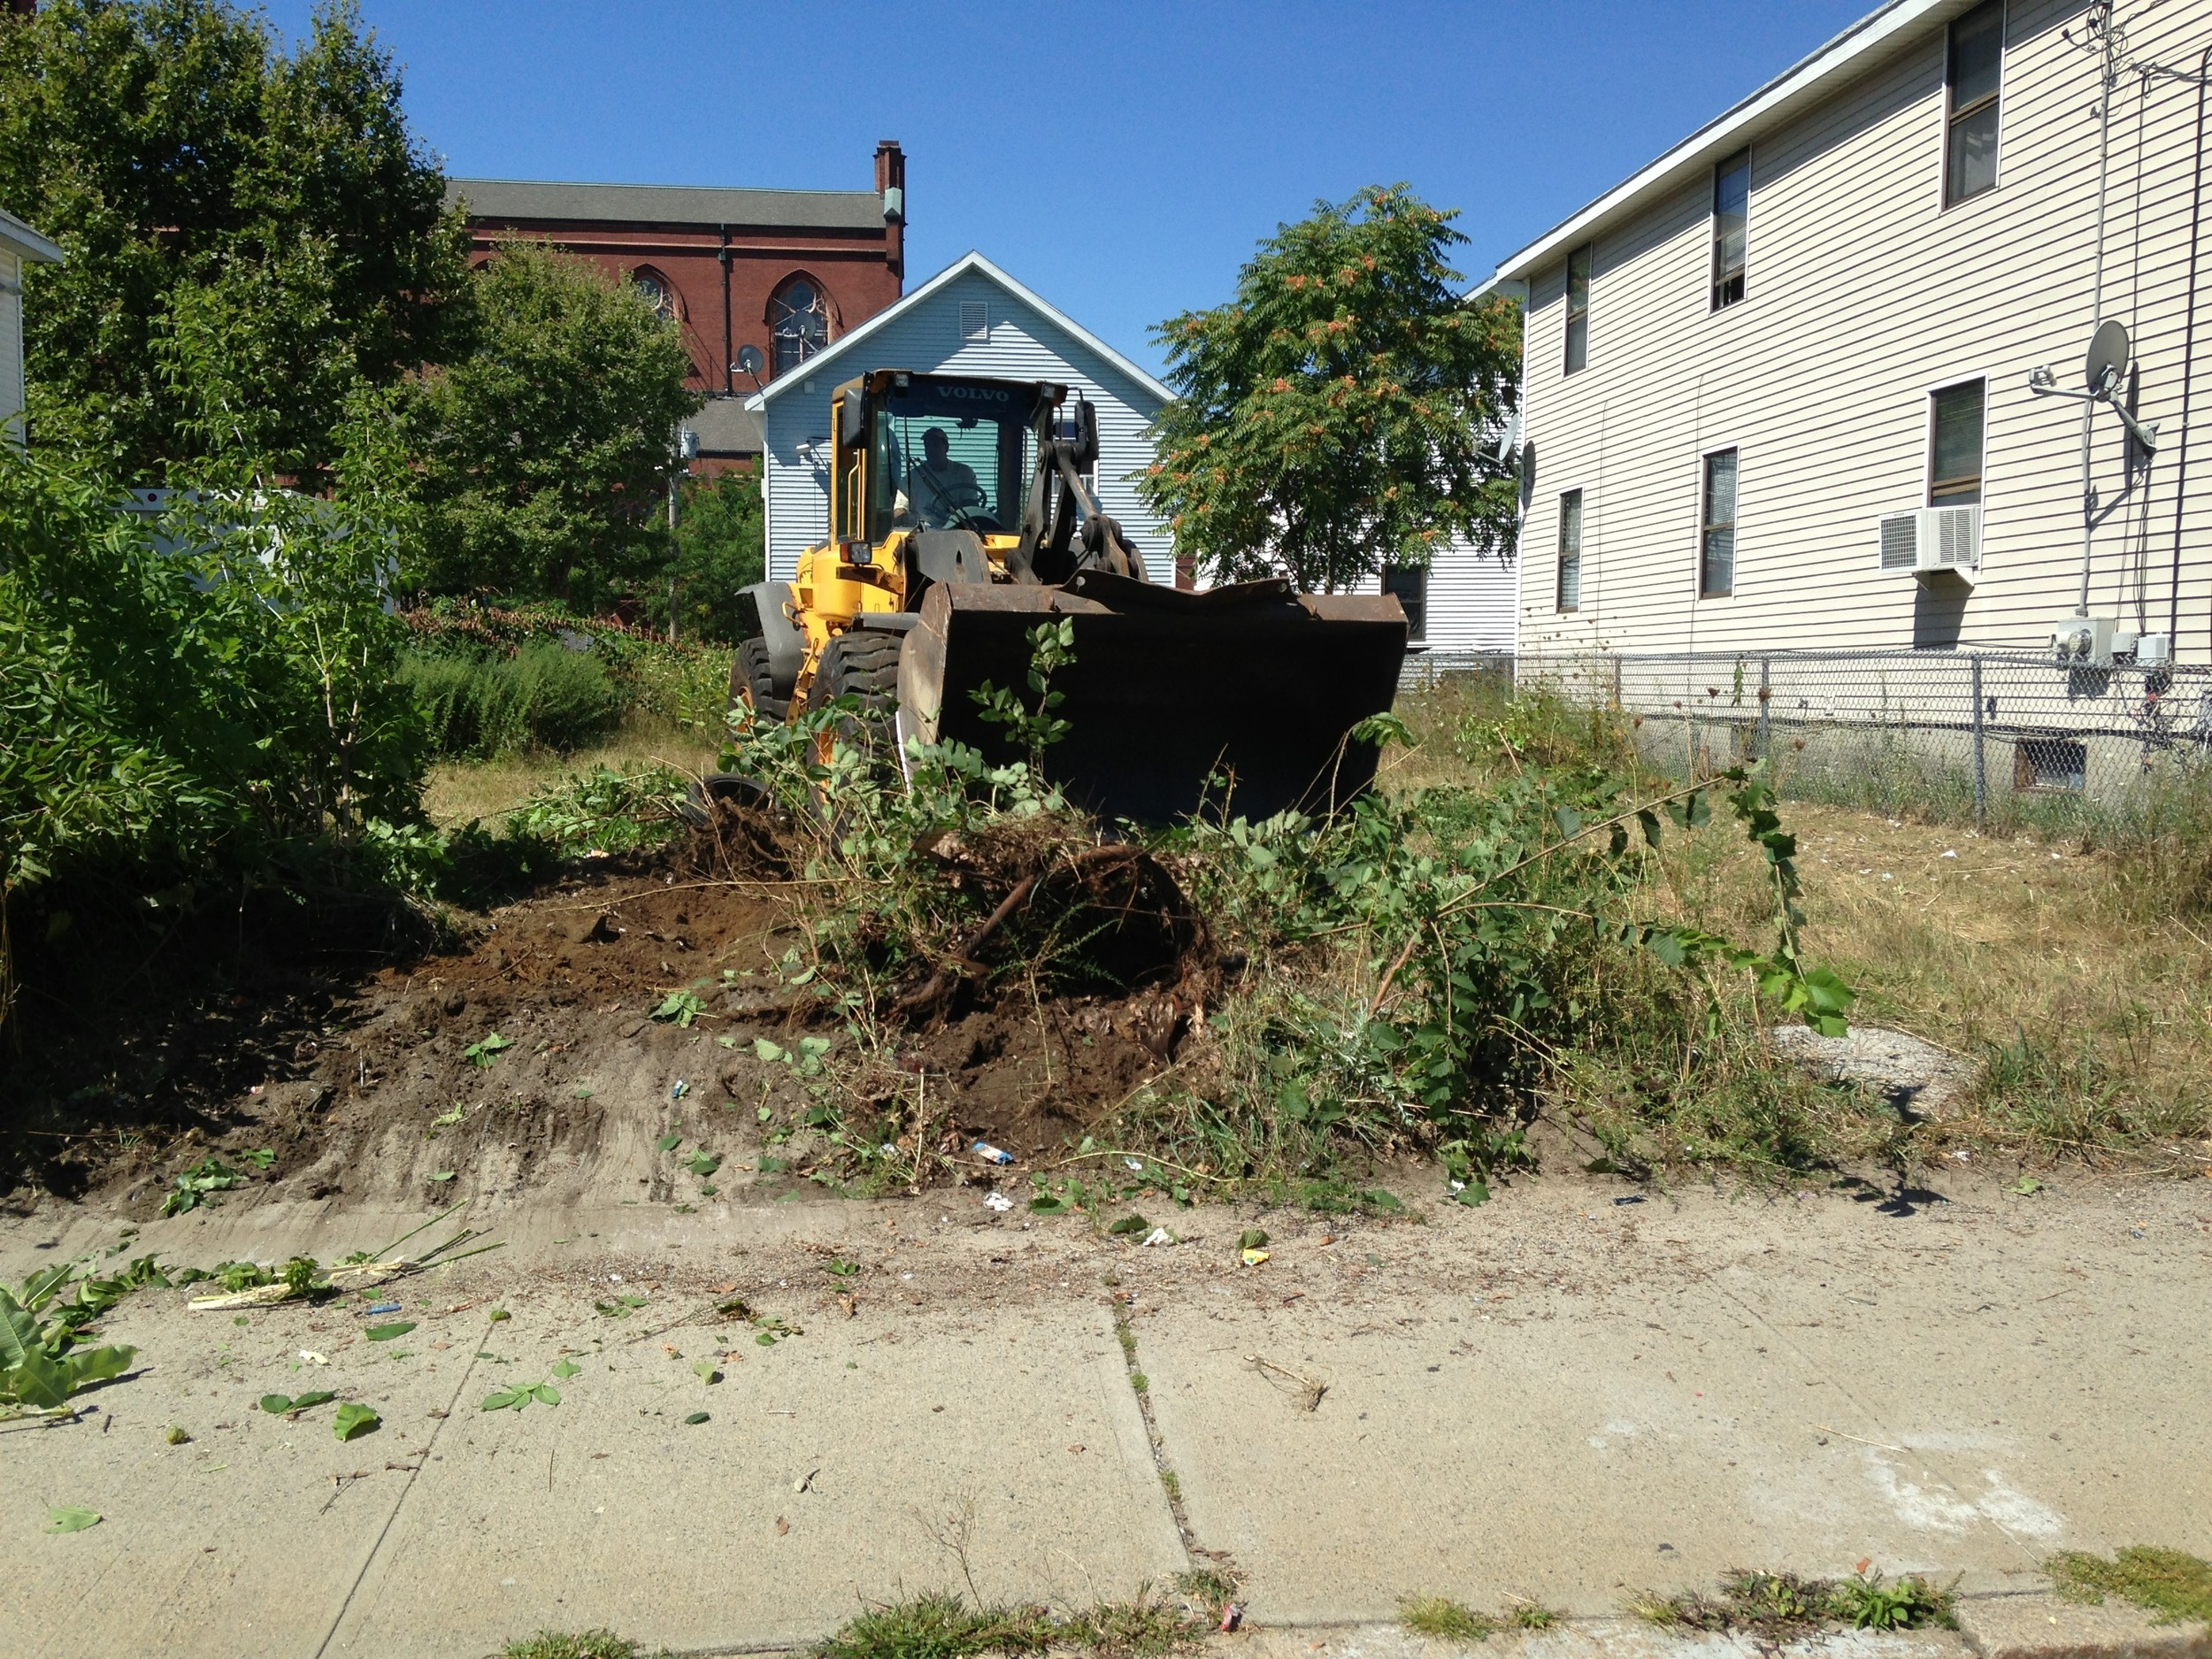 A vacant lot at 433 Prairie Ave. in Providence is cleared to make way for a new urban greenhouse, part of the Lots of Hope initiative to support local urban farming.